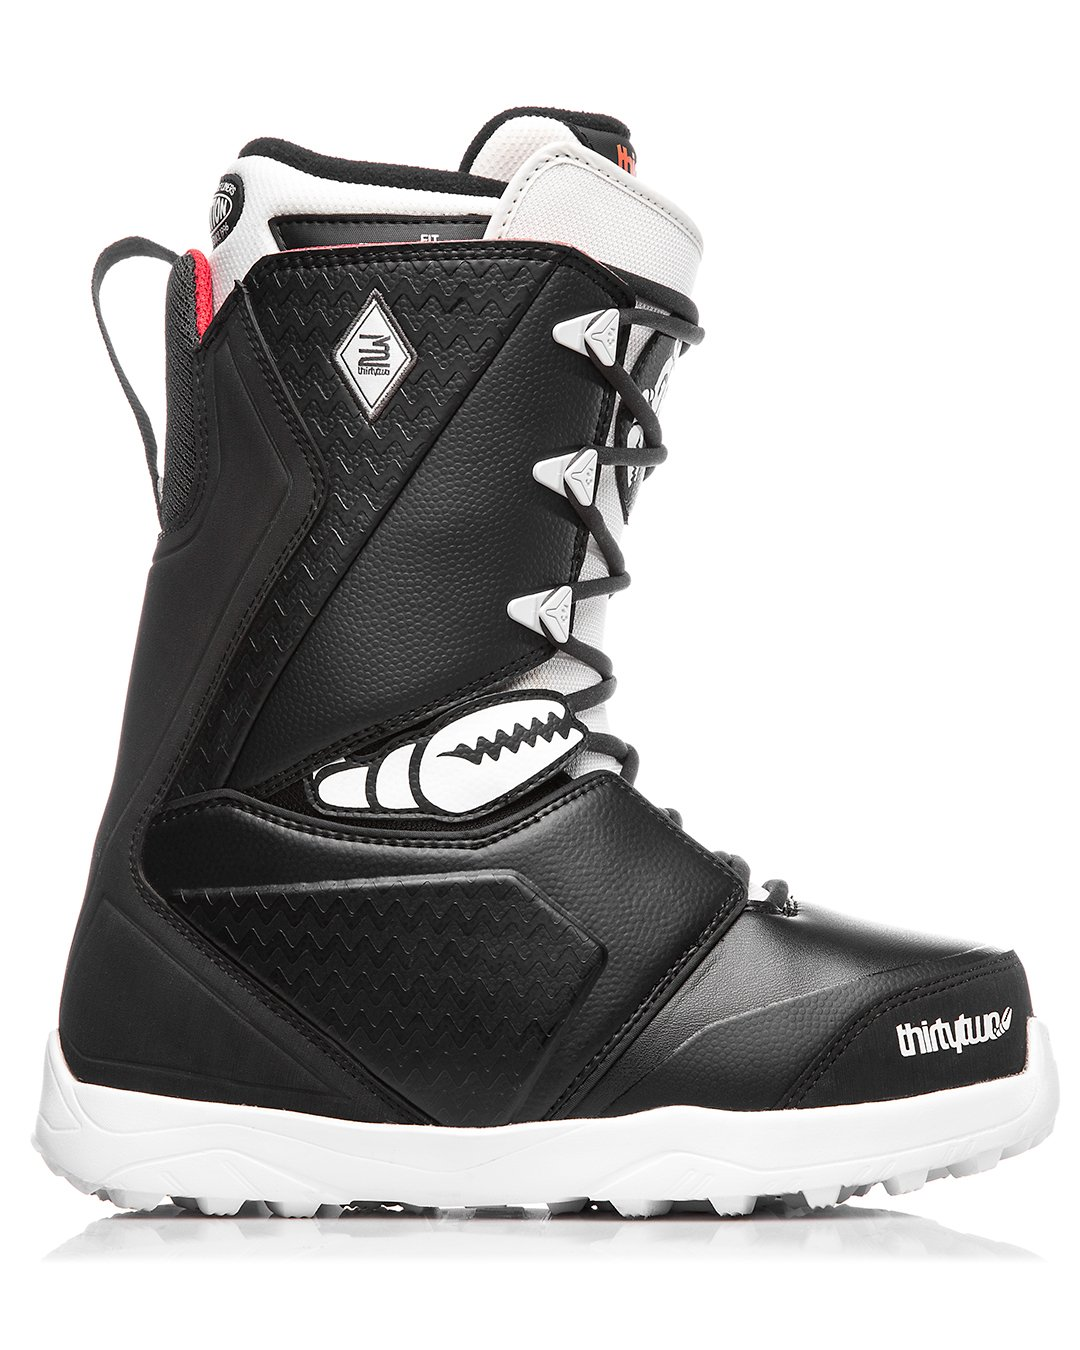 2019 Thirtytwo Lashed Crab Grab Men's Snowboard Boots